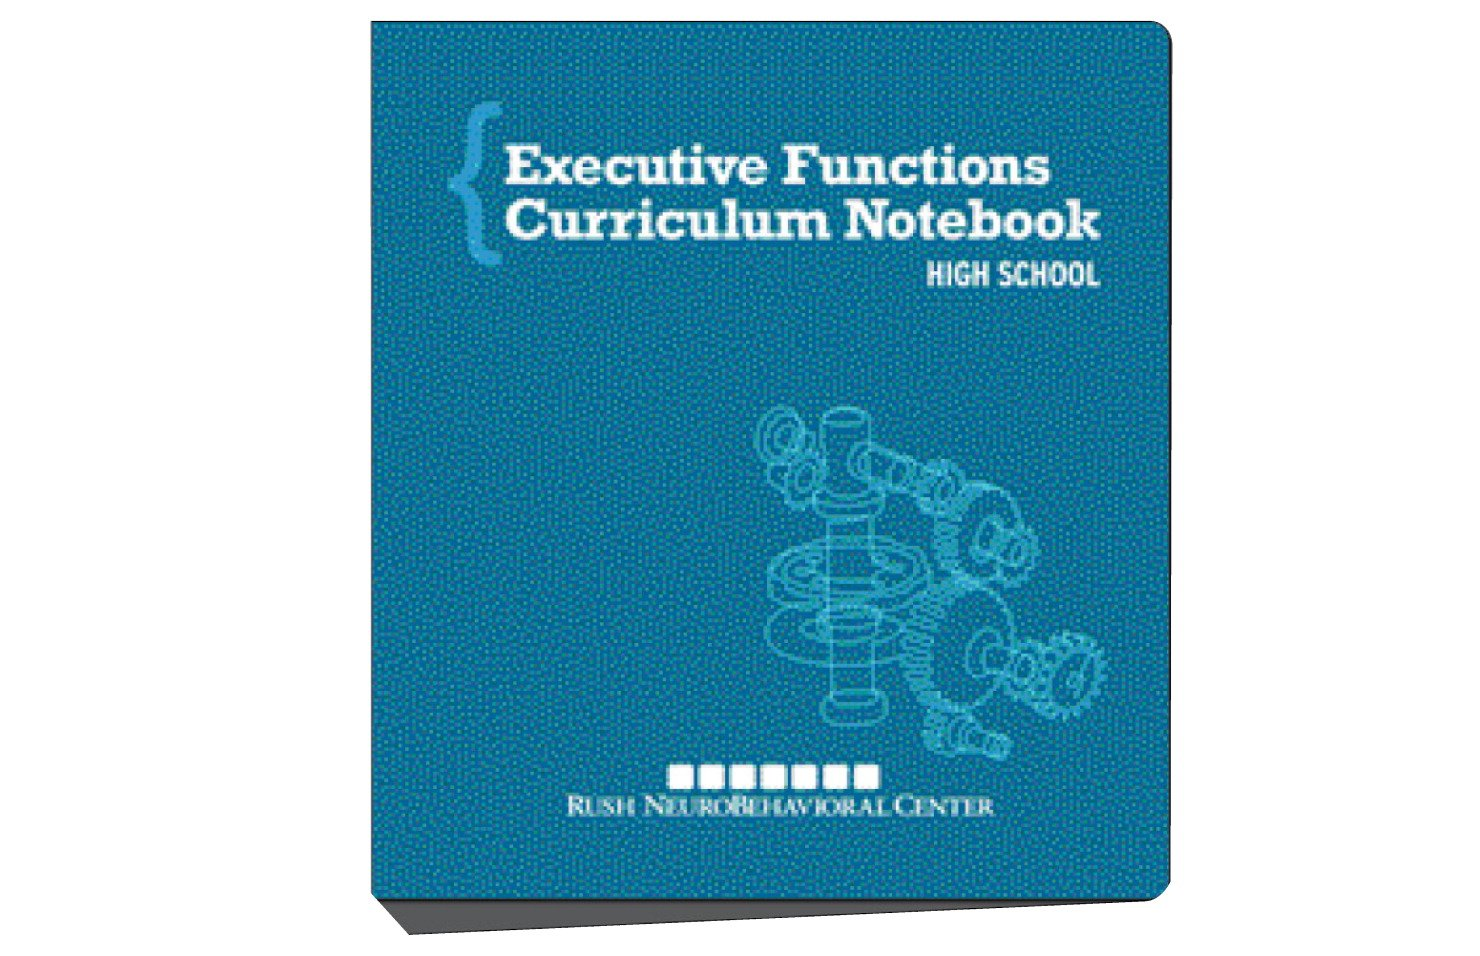 Executive Functions Teacher Curriculum Notebook, Grades 9 to 12